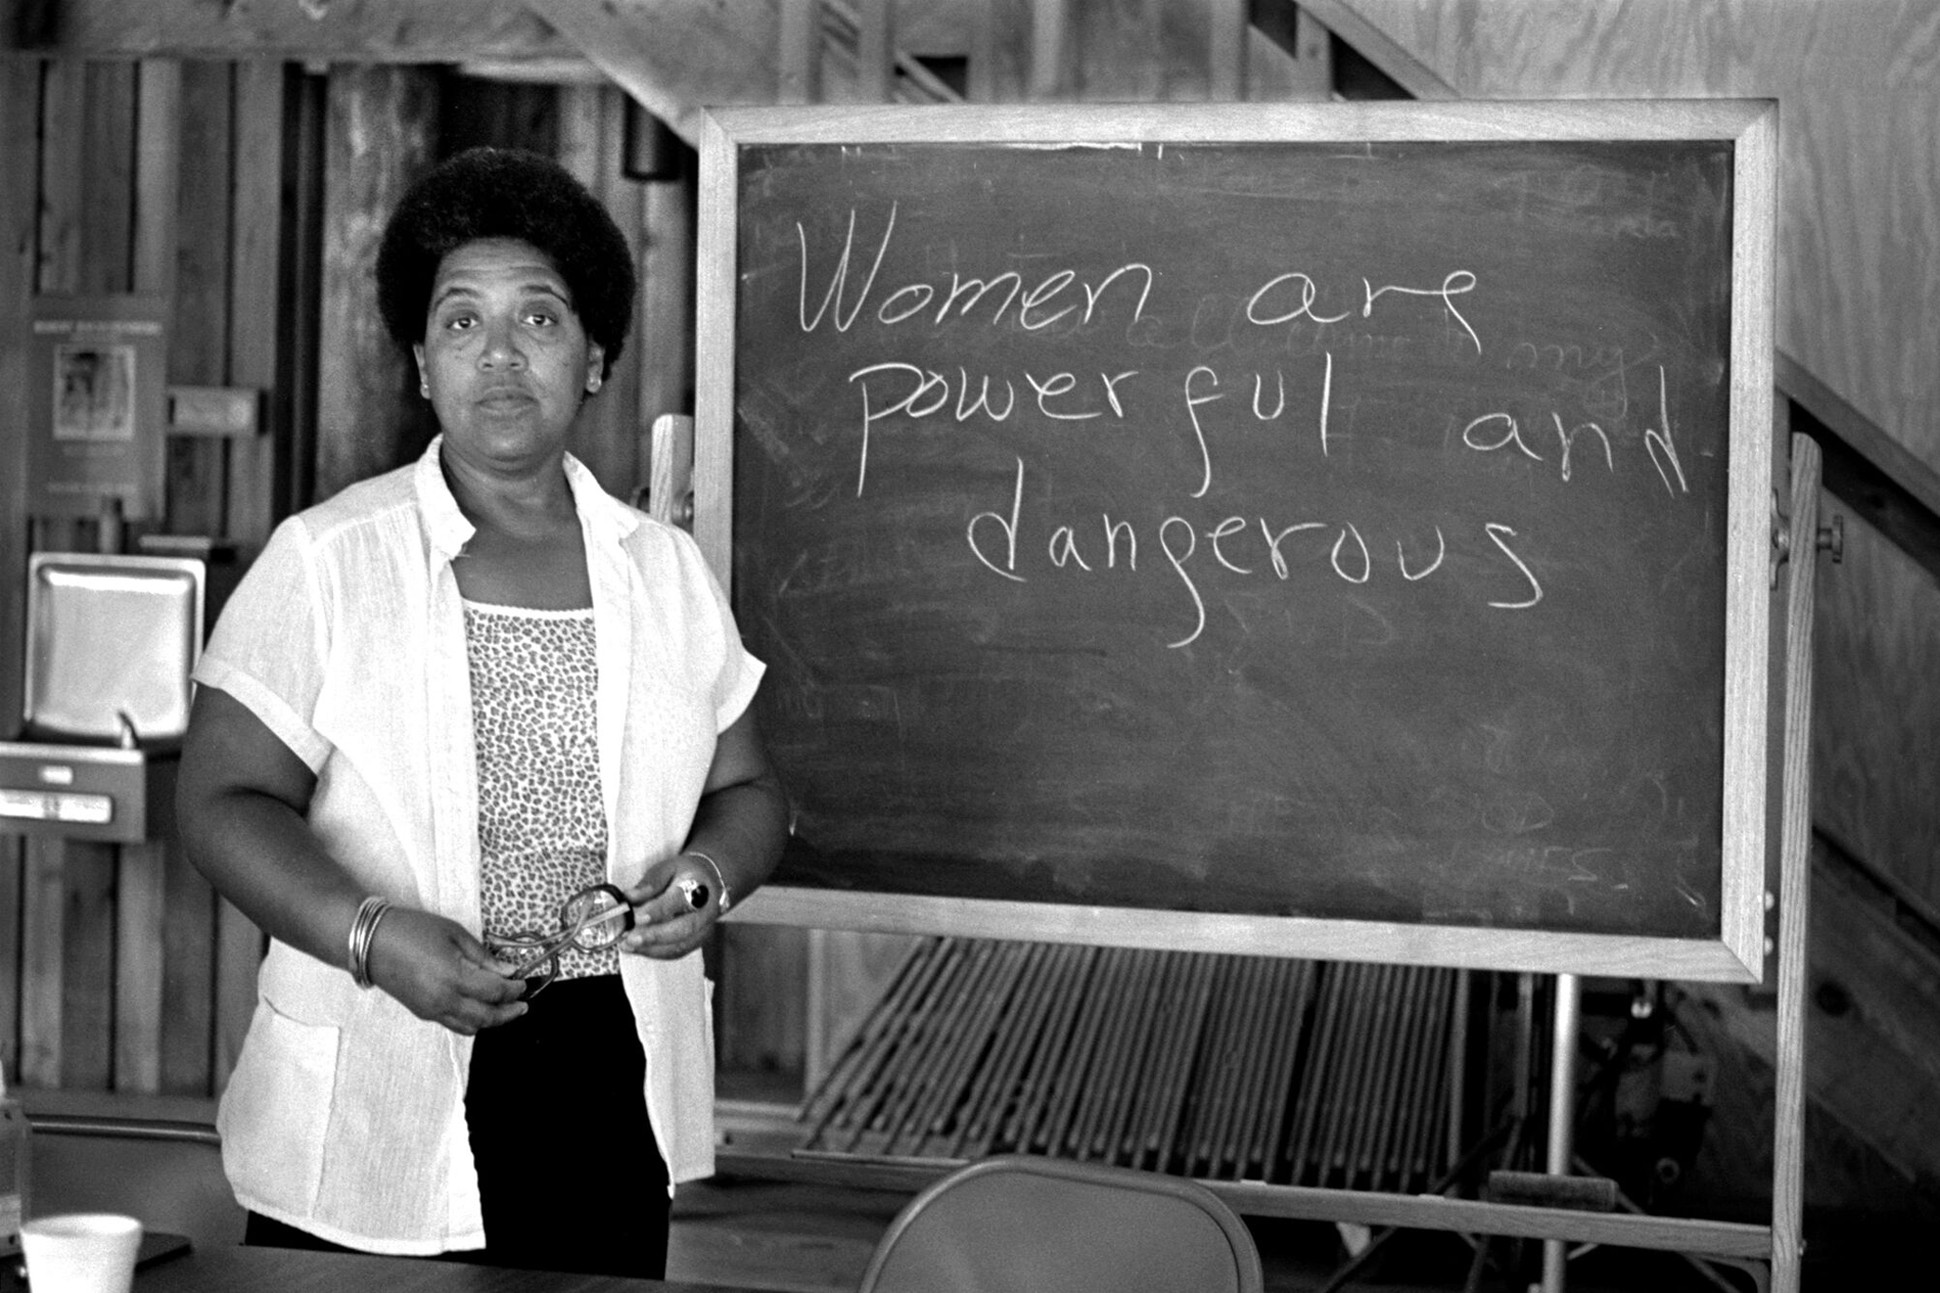 Audre Lorde standing next to a chalkboard where she has written Women are powerful and dangerous